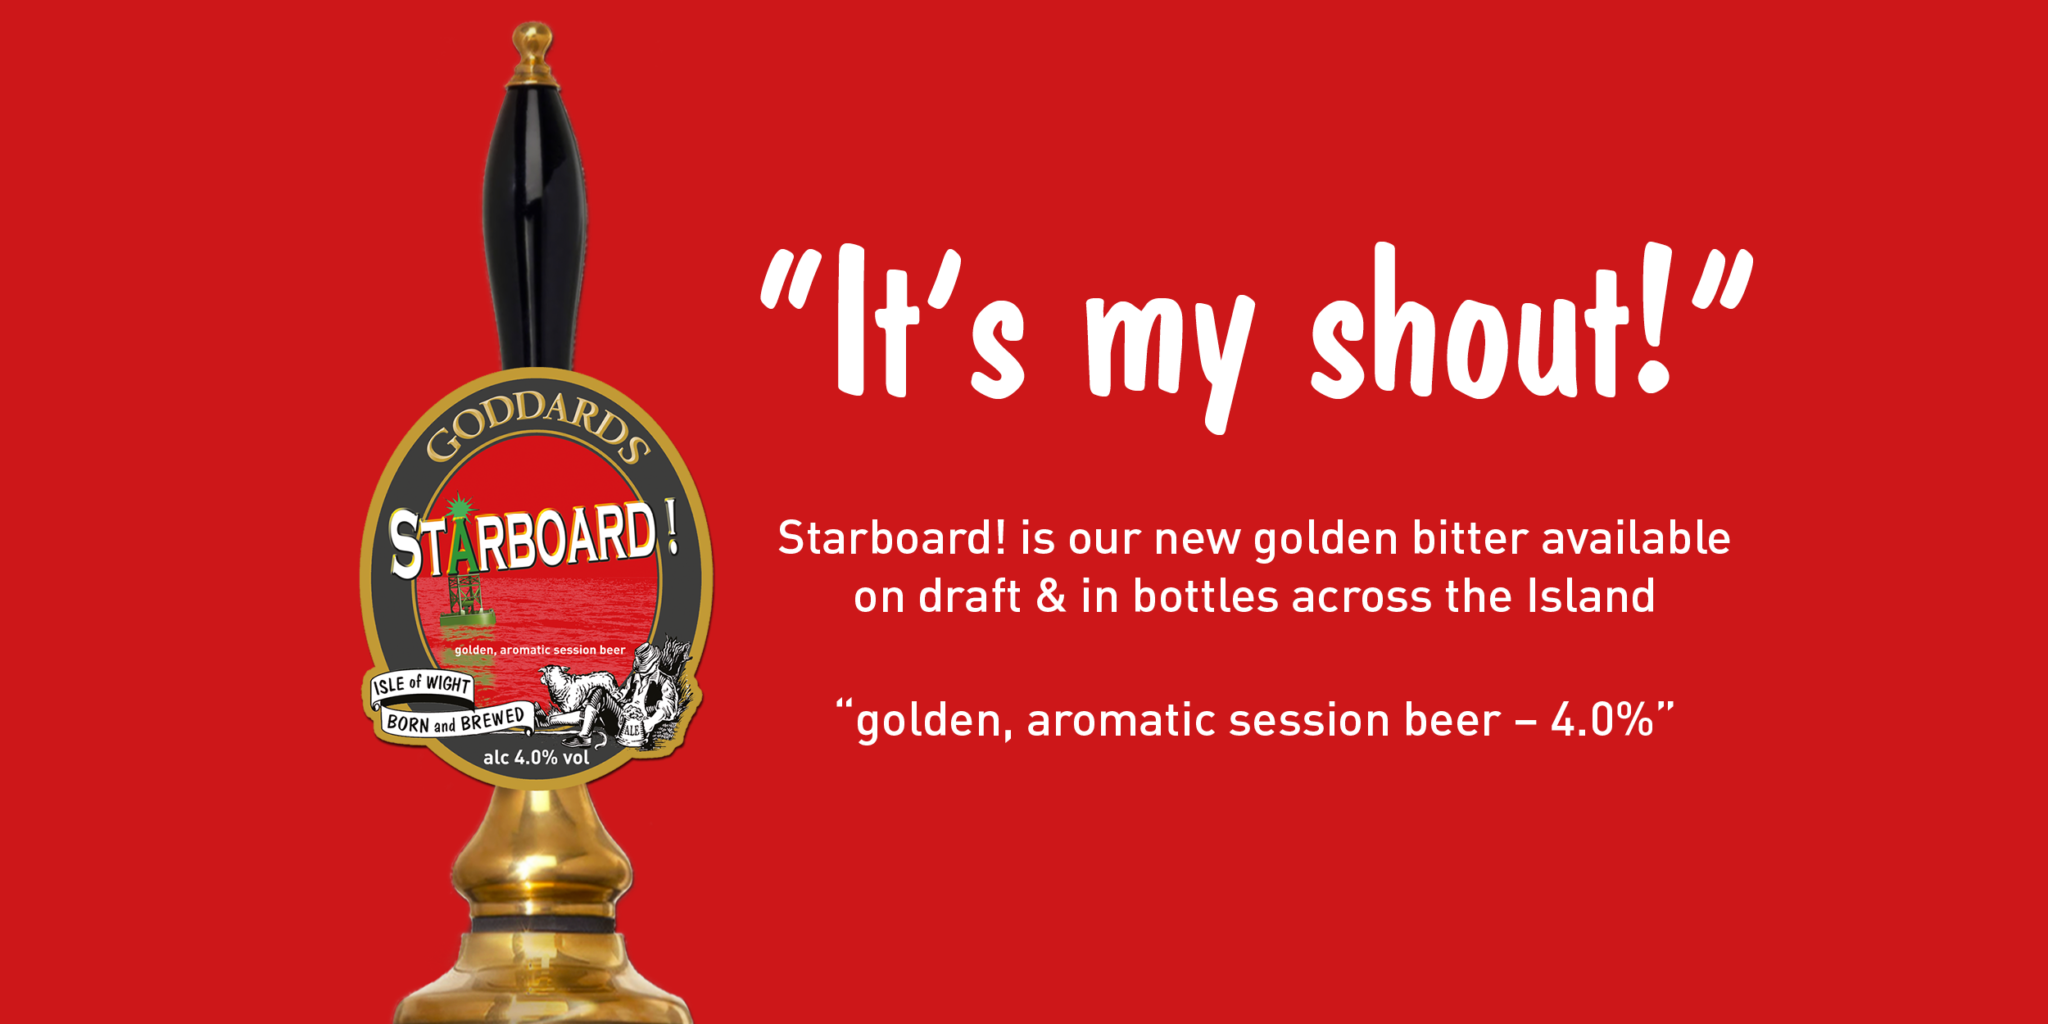 It's my shout! Starboard Goddards Brewery